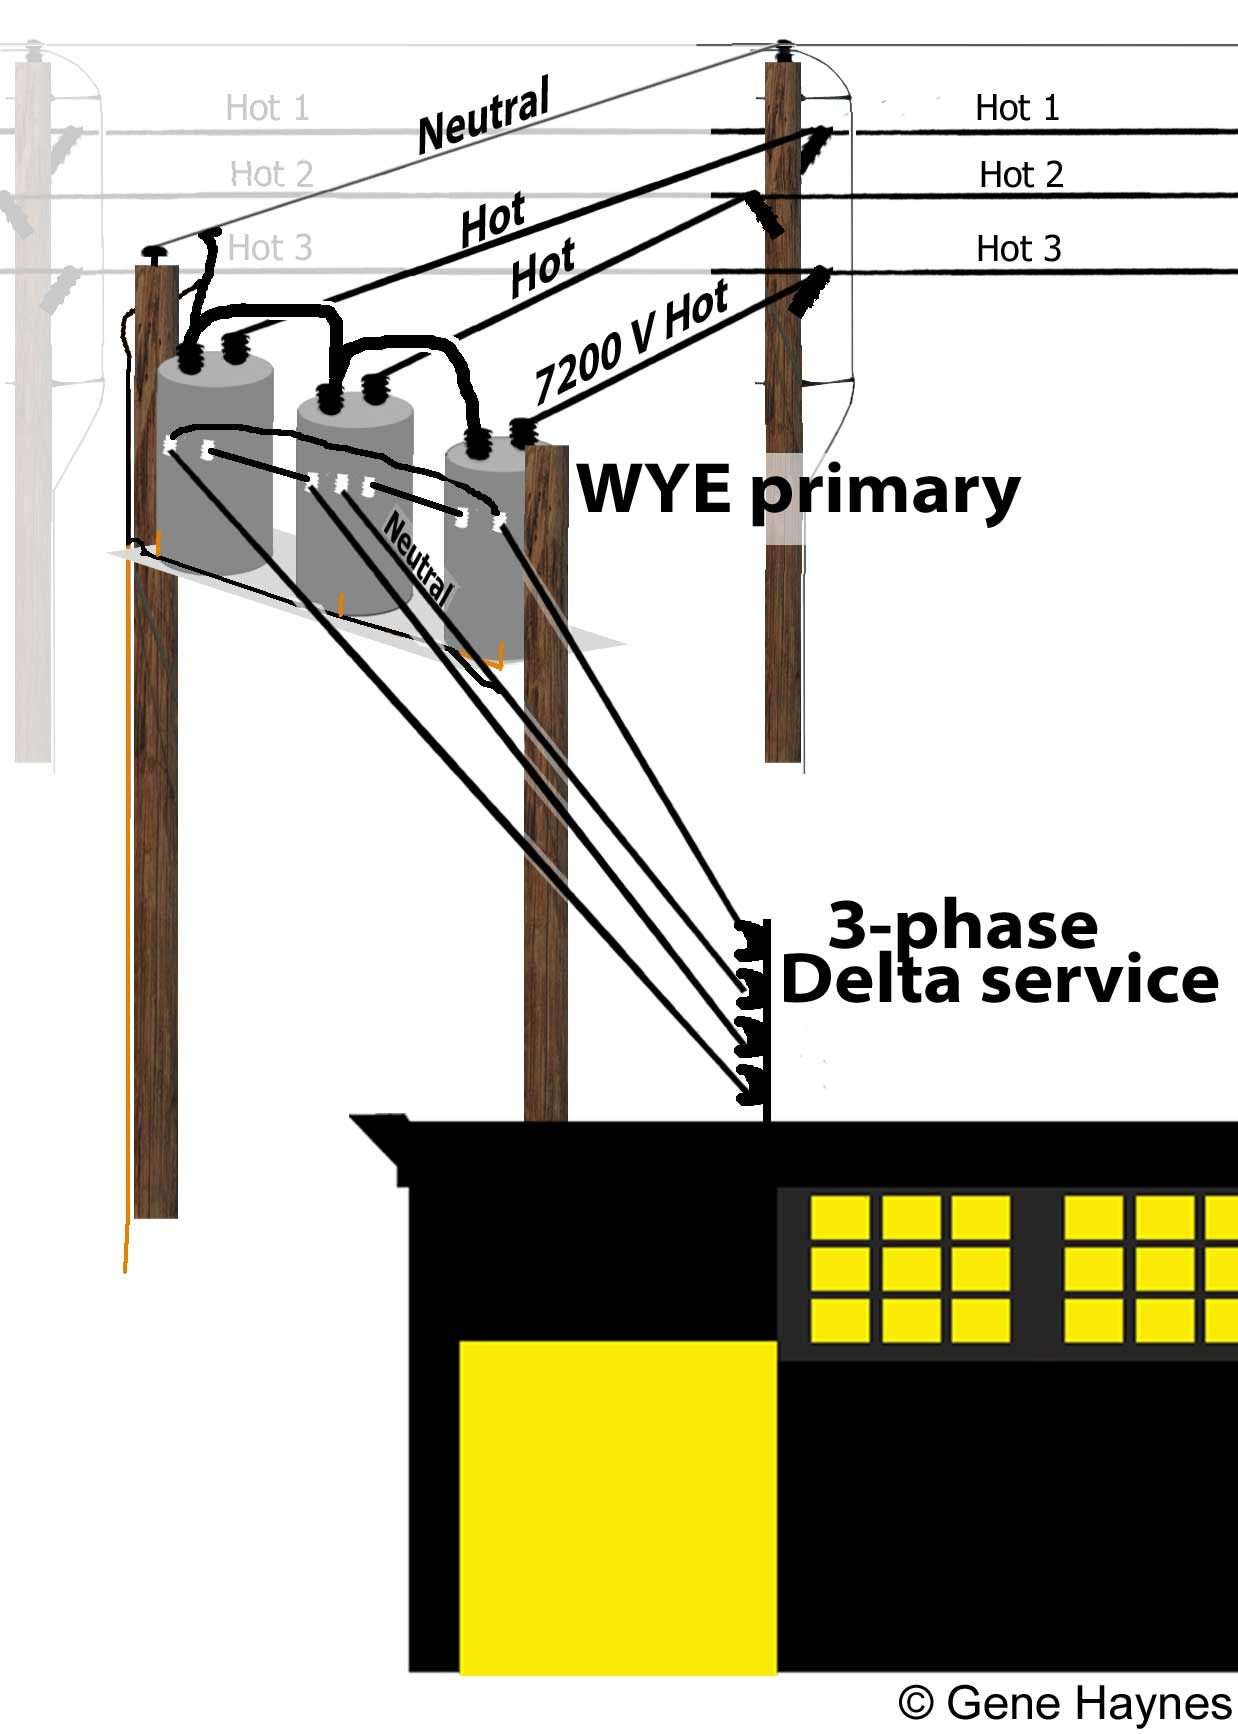 What is High Leg Delta | DIY water heater | Transformers, Electrical Utility Heater Wiring Diagram on wiper motor diagram, plc input and output diagram, water heater installation diagram, doorbell installation diagram, heater coil diagram, heater pump diagram, heater control diagram, transmission diagram, reddy heater parts diagram, doorbell wire connection diagram, heater circuit diagram, heater hoses diagram, thermo king reefer unit diagram, voltage regulator diagram, solar panel inverter circuit diagram, heater thermostat diagram, tankless water heater diagram, heater radiator, home heating diagram, thermo king tripac apu diagram,